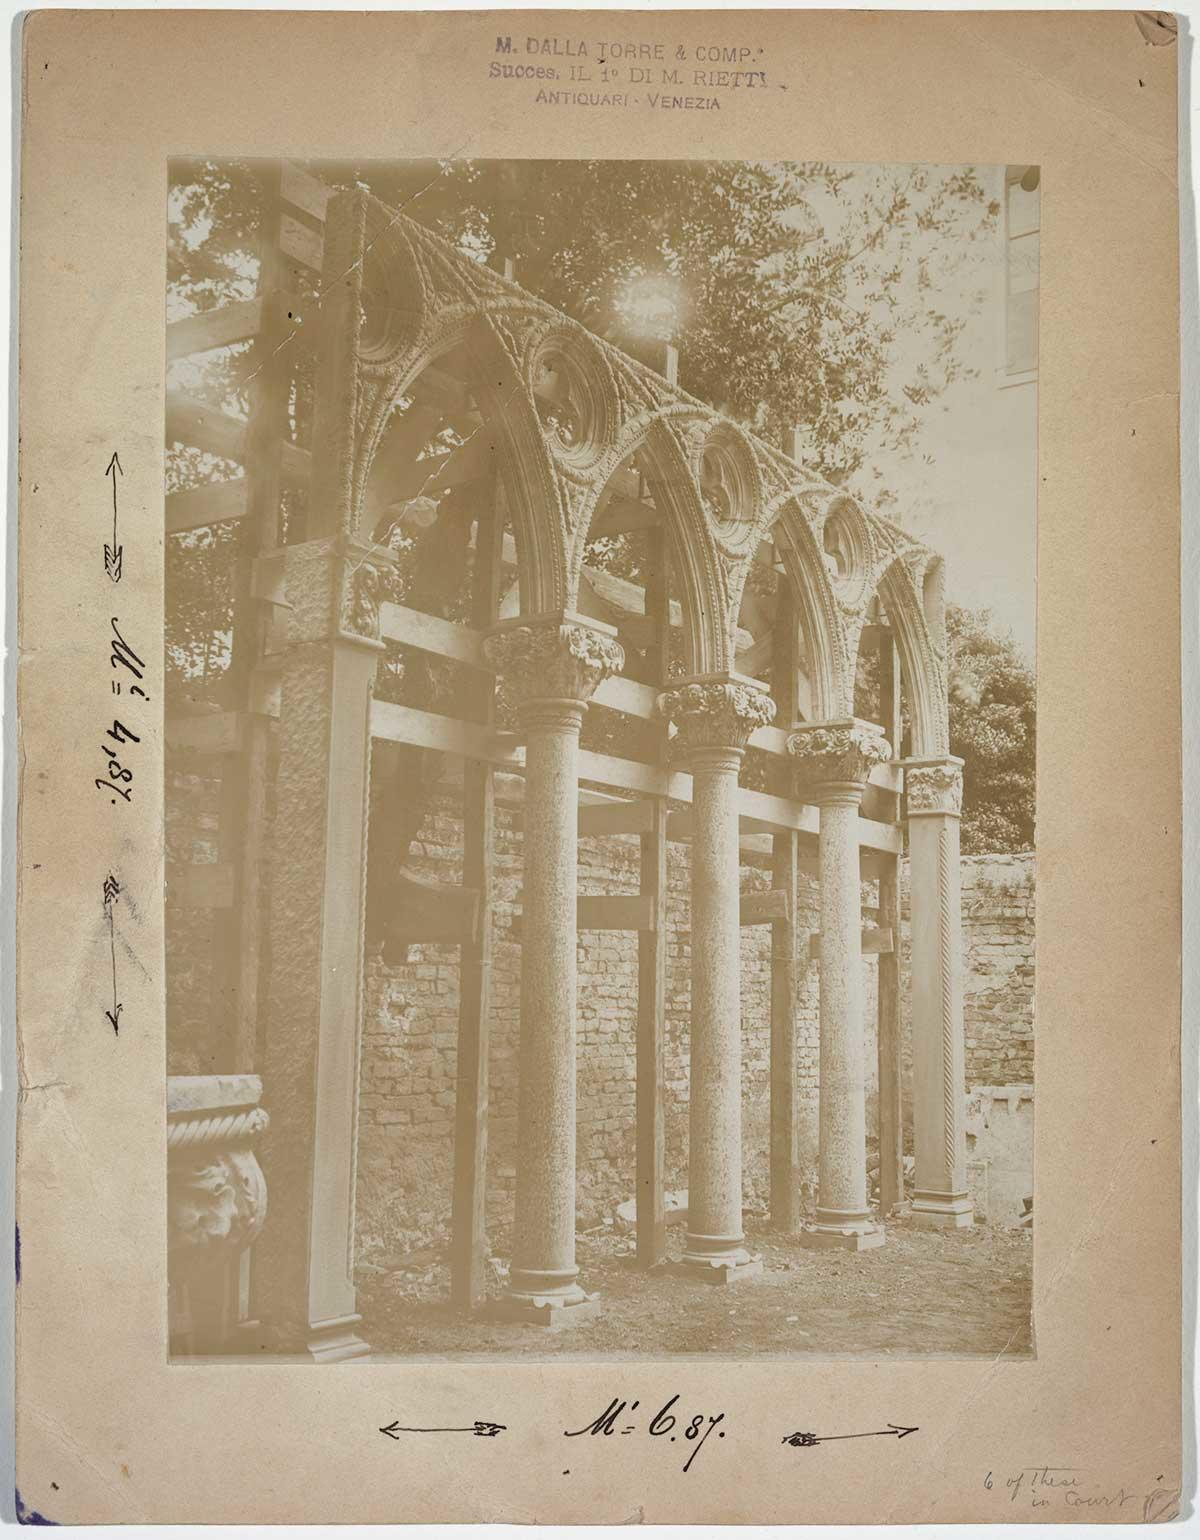 Photograph of Venetian stone arches that Isabella Stewart Gardner purchased from the antique dealer Moise Dalla Torre